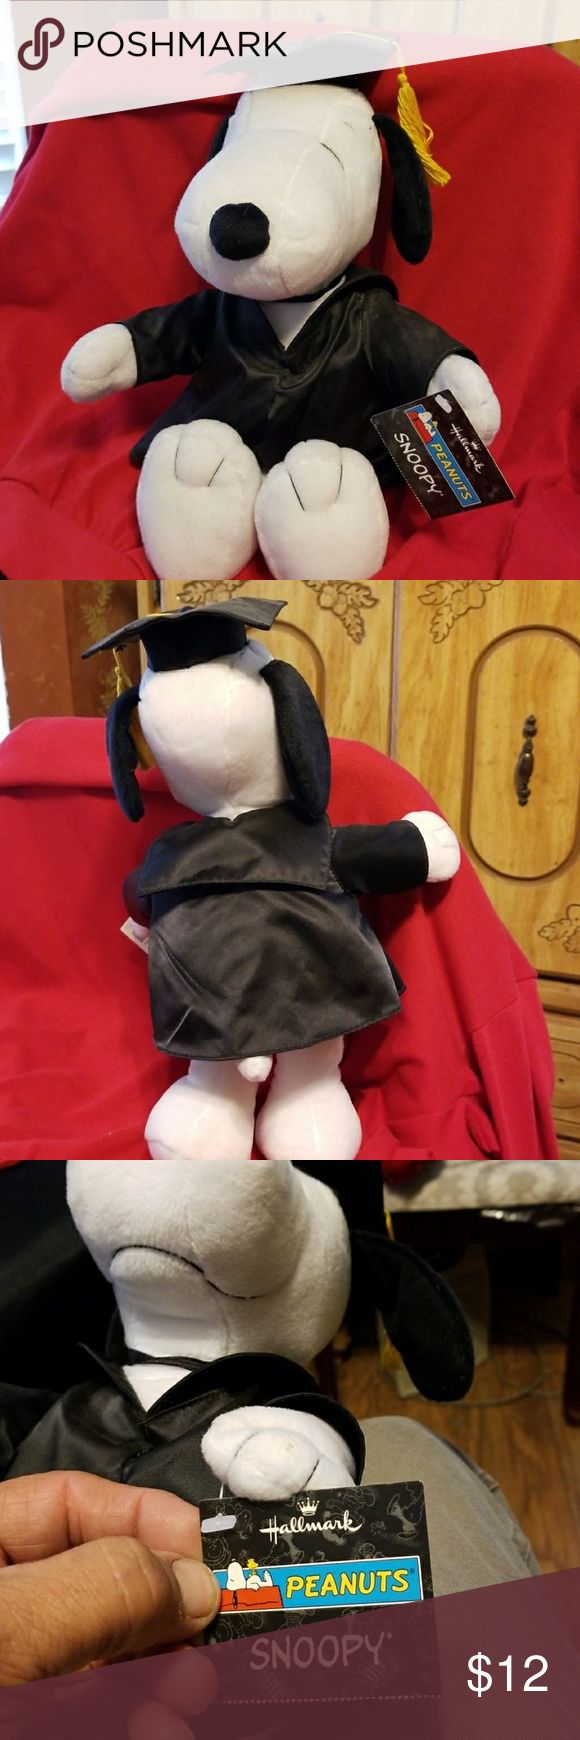 "Hallmark Snoopy stuffed animal From top to bottom he stands  16"" tall. from arm to arm is 10"" and has the original sticker of hallmark. a perfect graduation gift to someone past or present Hallmark Other"